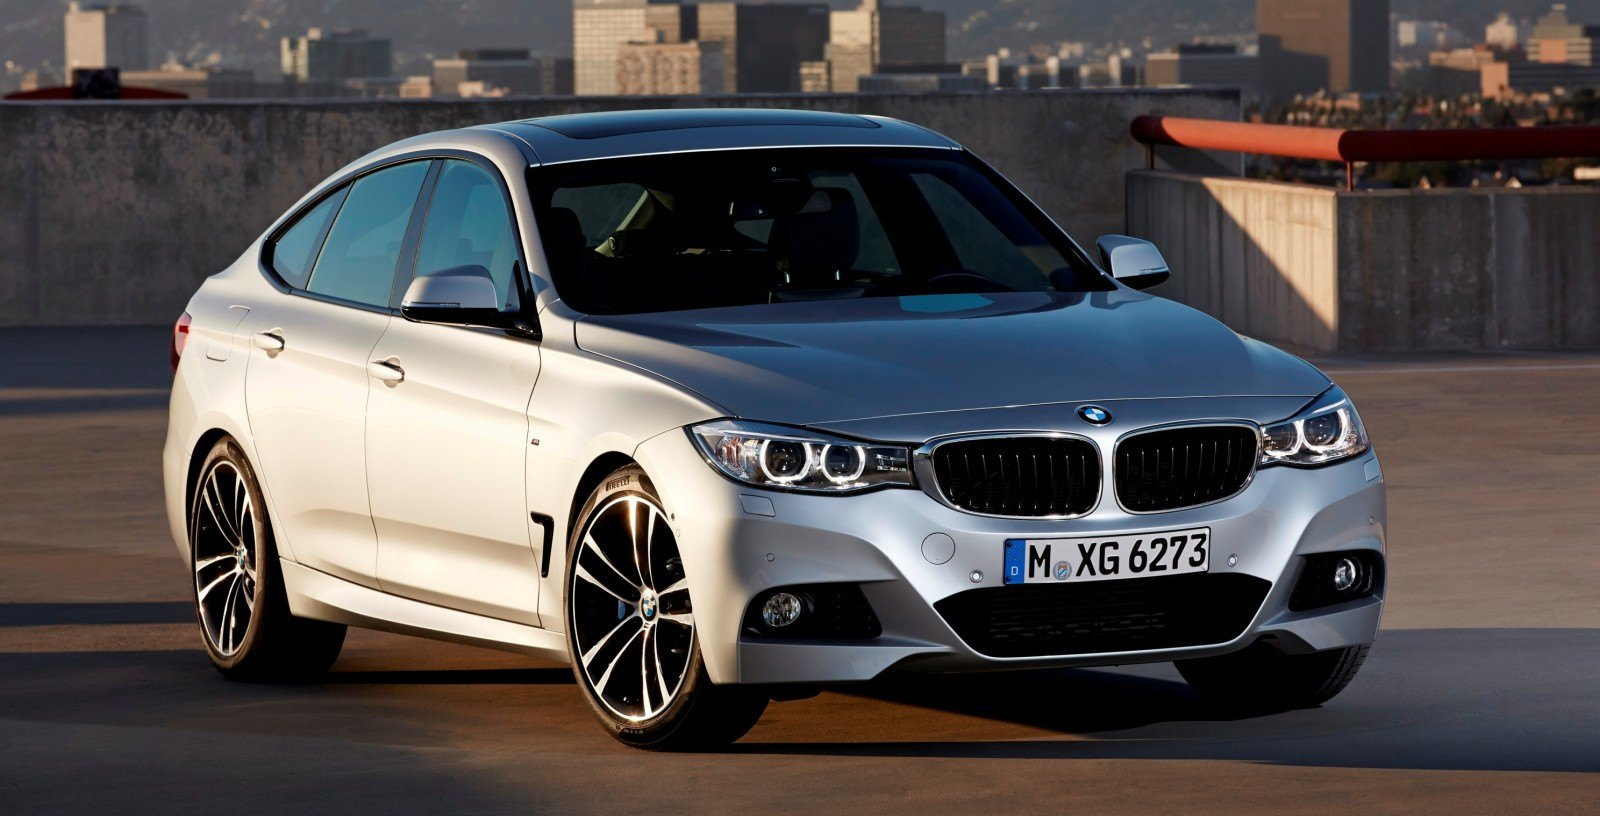 Best of Awards - 1000 miles at 100MPH - 2014 M Sport BMW 335i GT 76